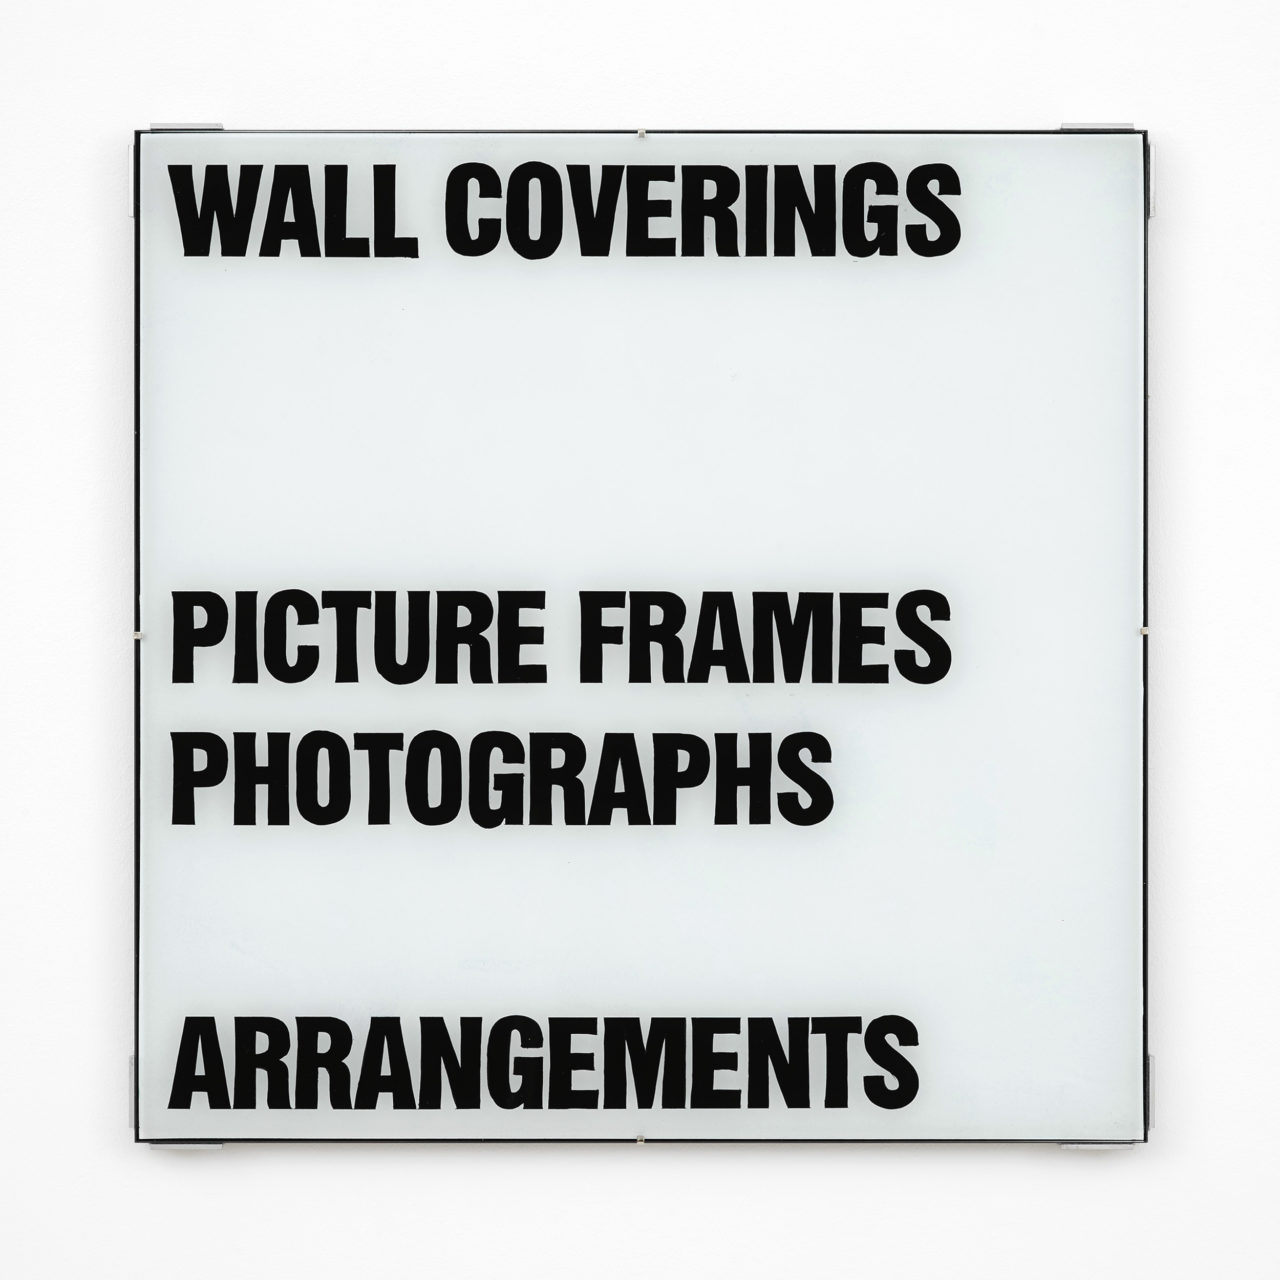 Christopher Williams, Werbung: Adapted for Use (Poster)